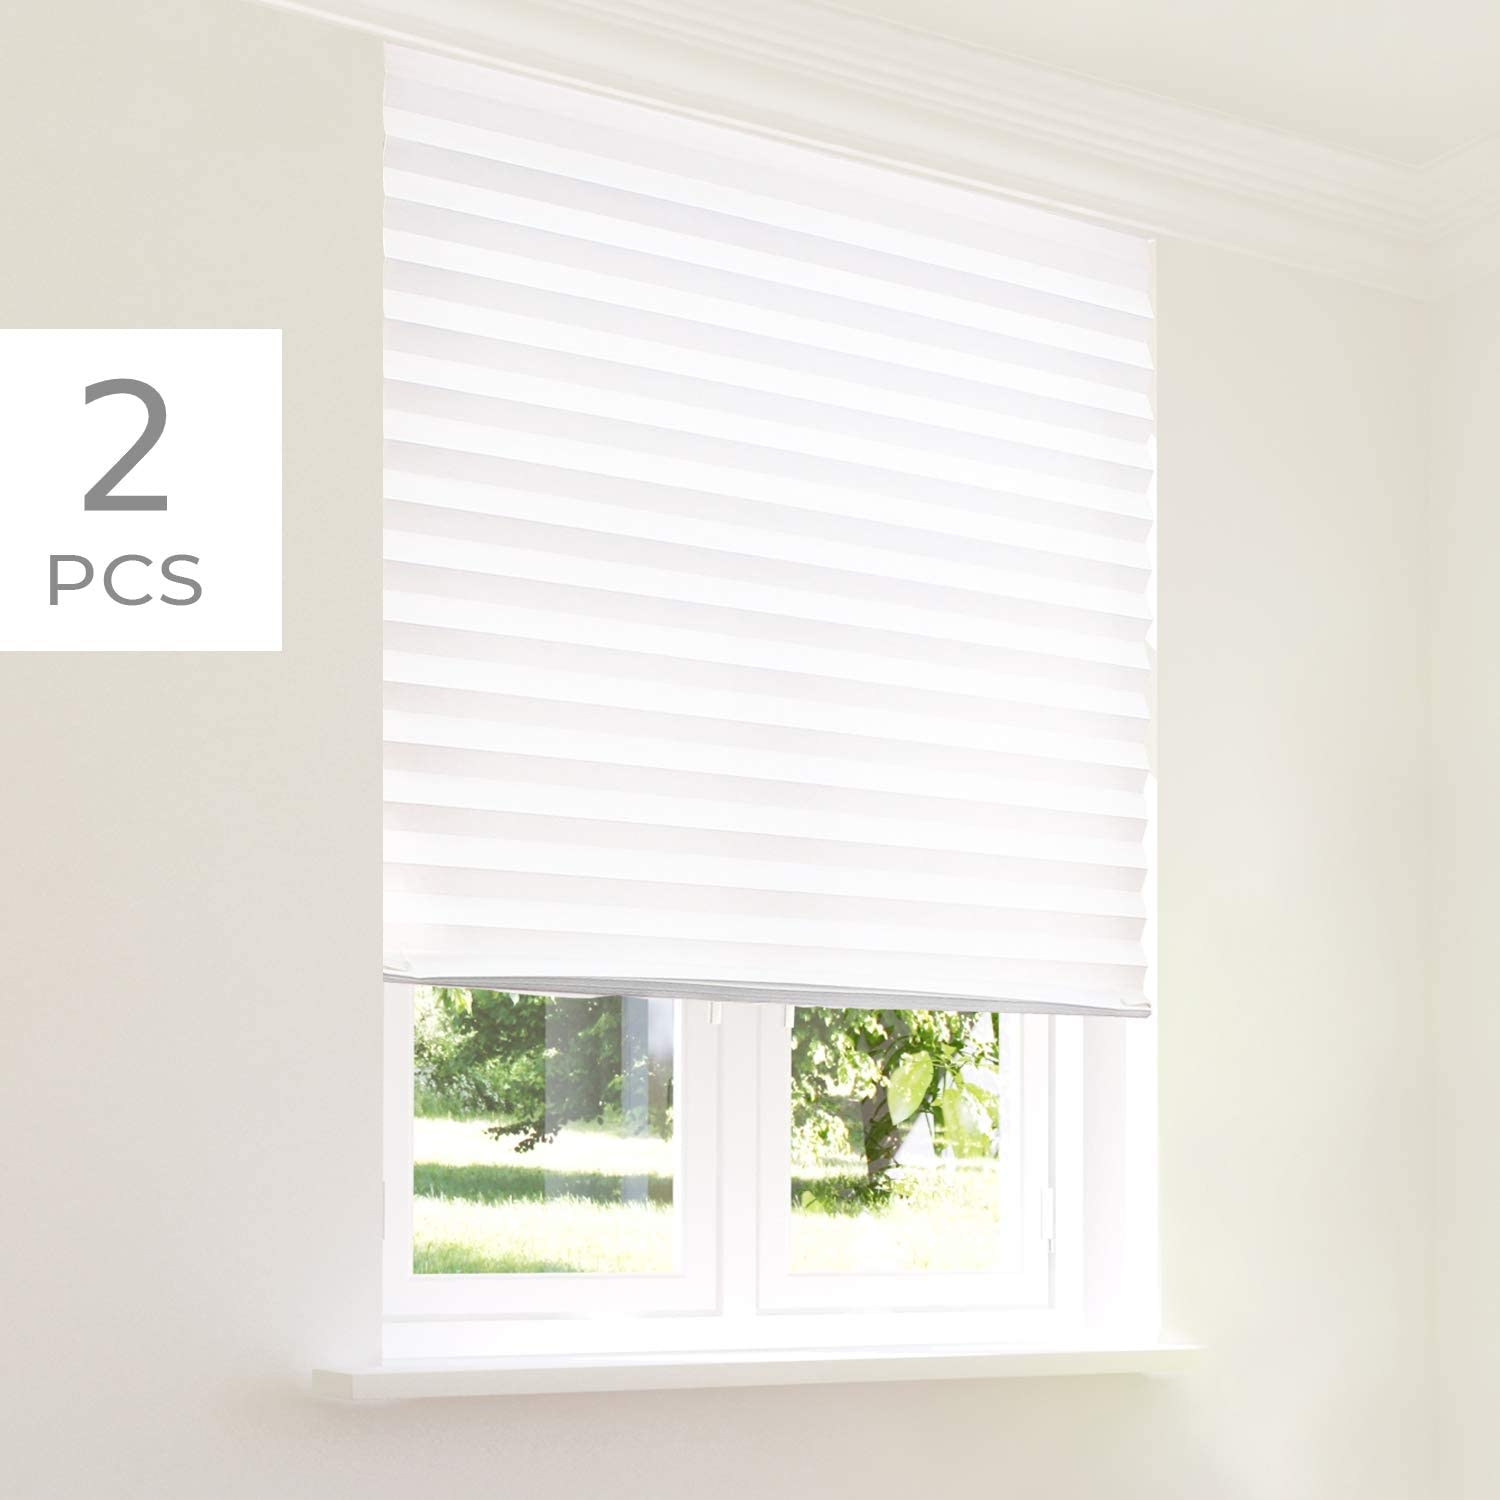 Chicology Instant Privacy Window Blind Original Pleated Paper Temporary Shade Easy To Cut And Install With Holding Clips Refresh White Privacy Light Filtering 2 Piece 48 W X 72 H Amazon Co Uk